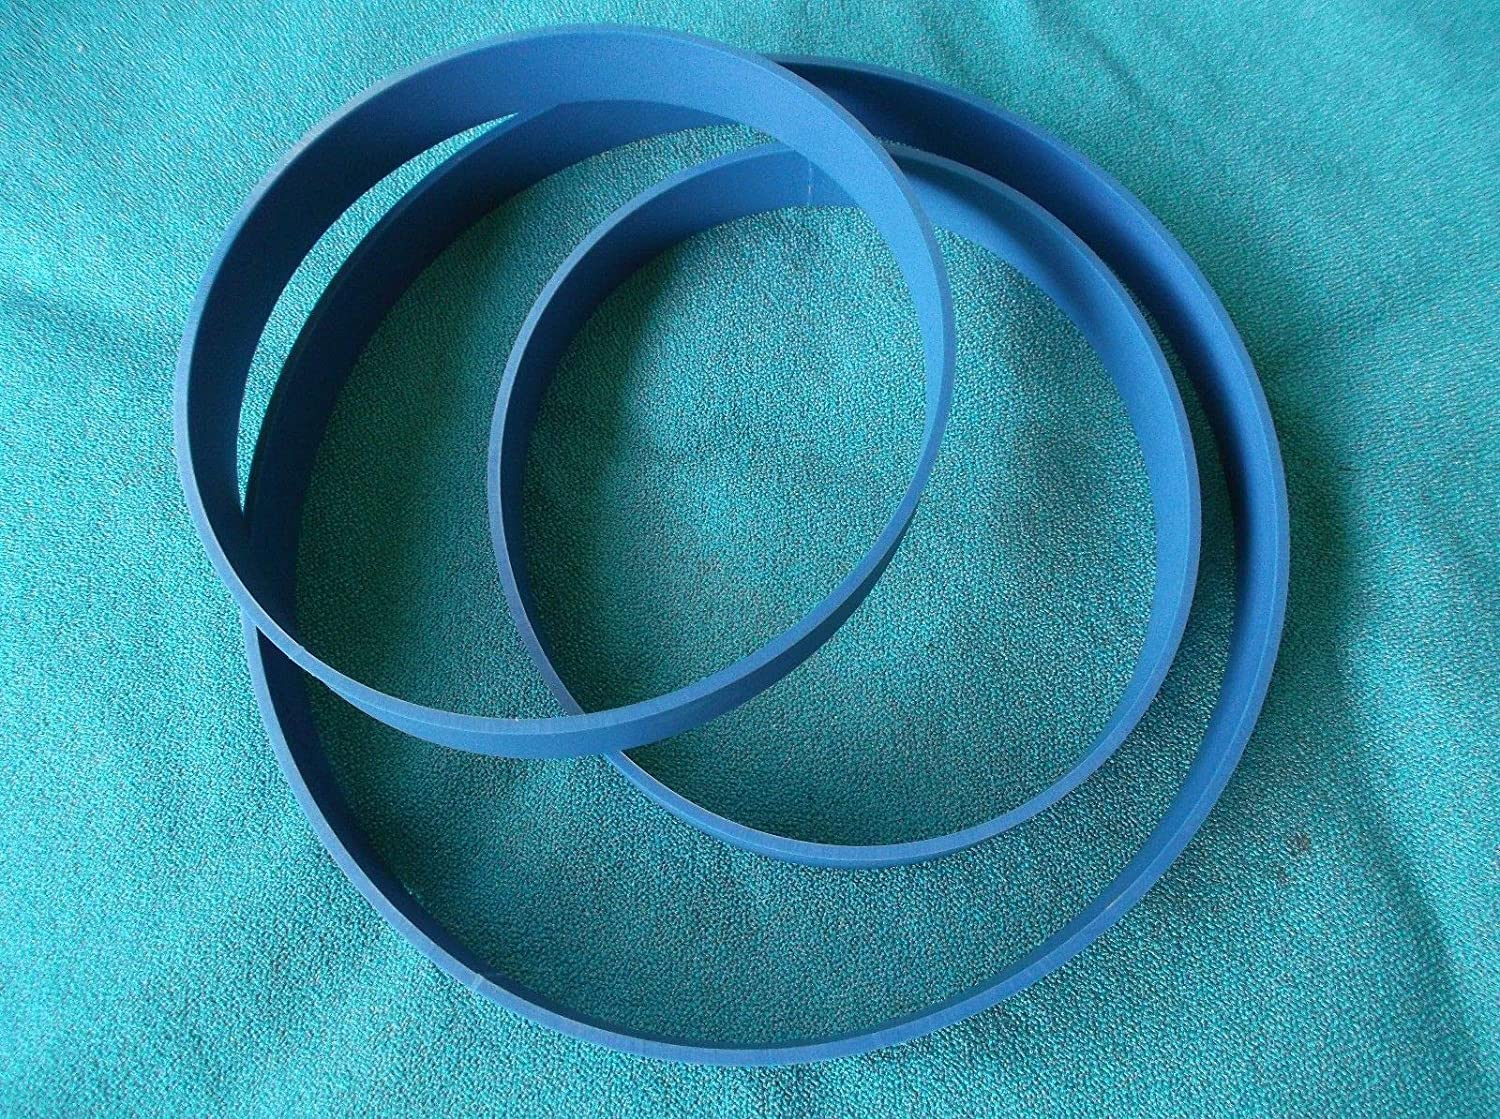 2 BLUE MAX URETHANE BAND SAW TIRES FOR DELTA  28-185 C HEAVY DUTY BAND SAW TIRES